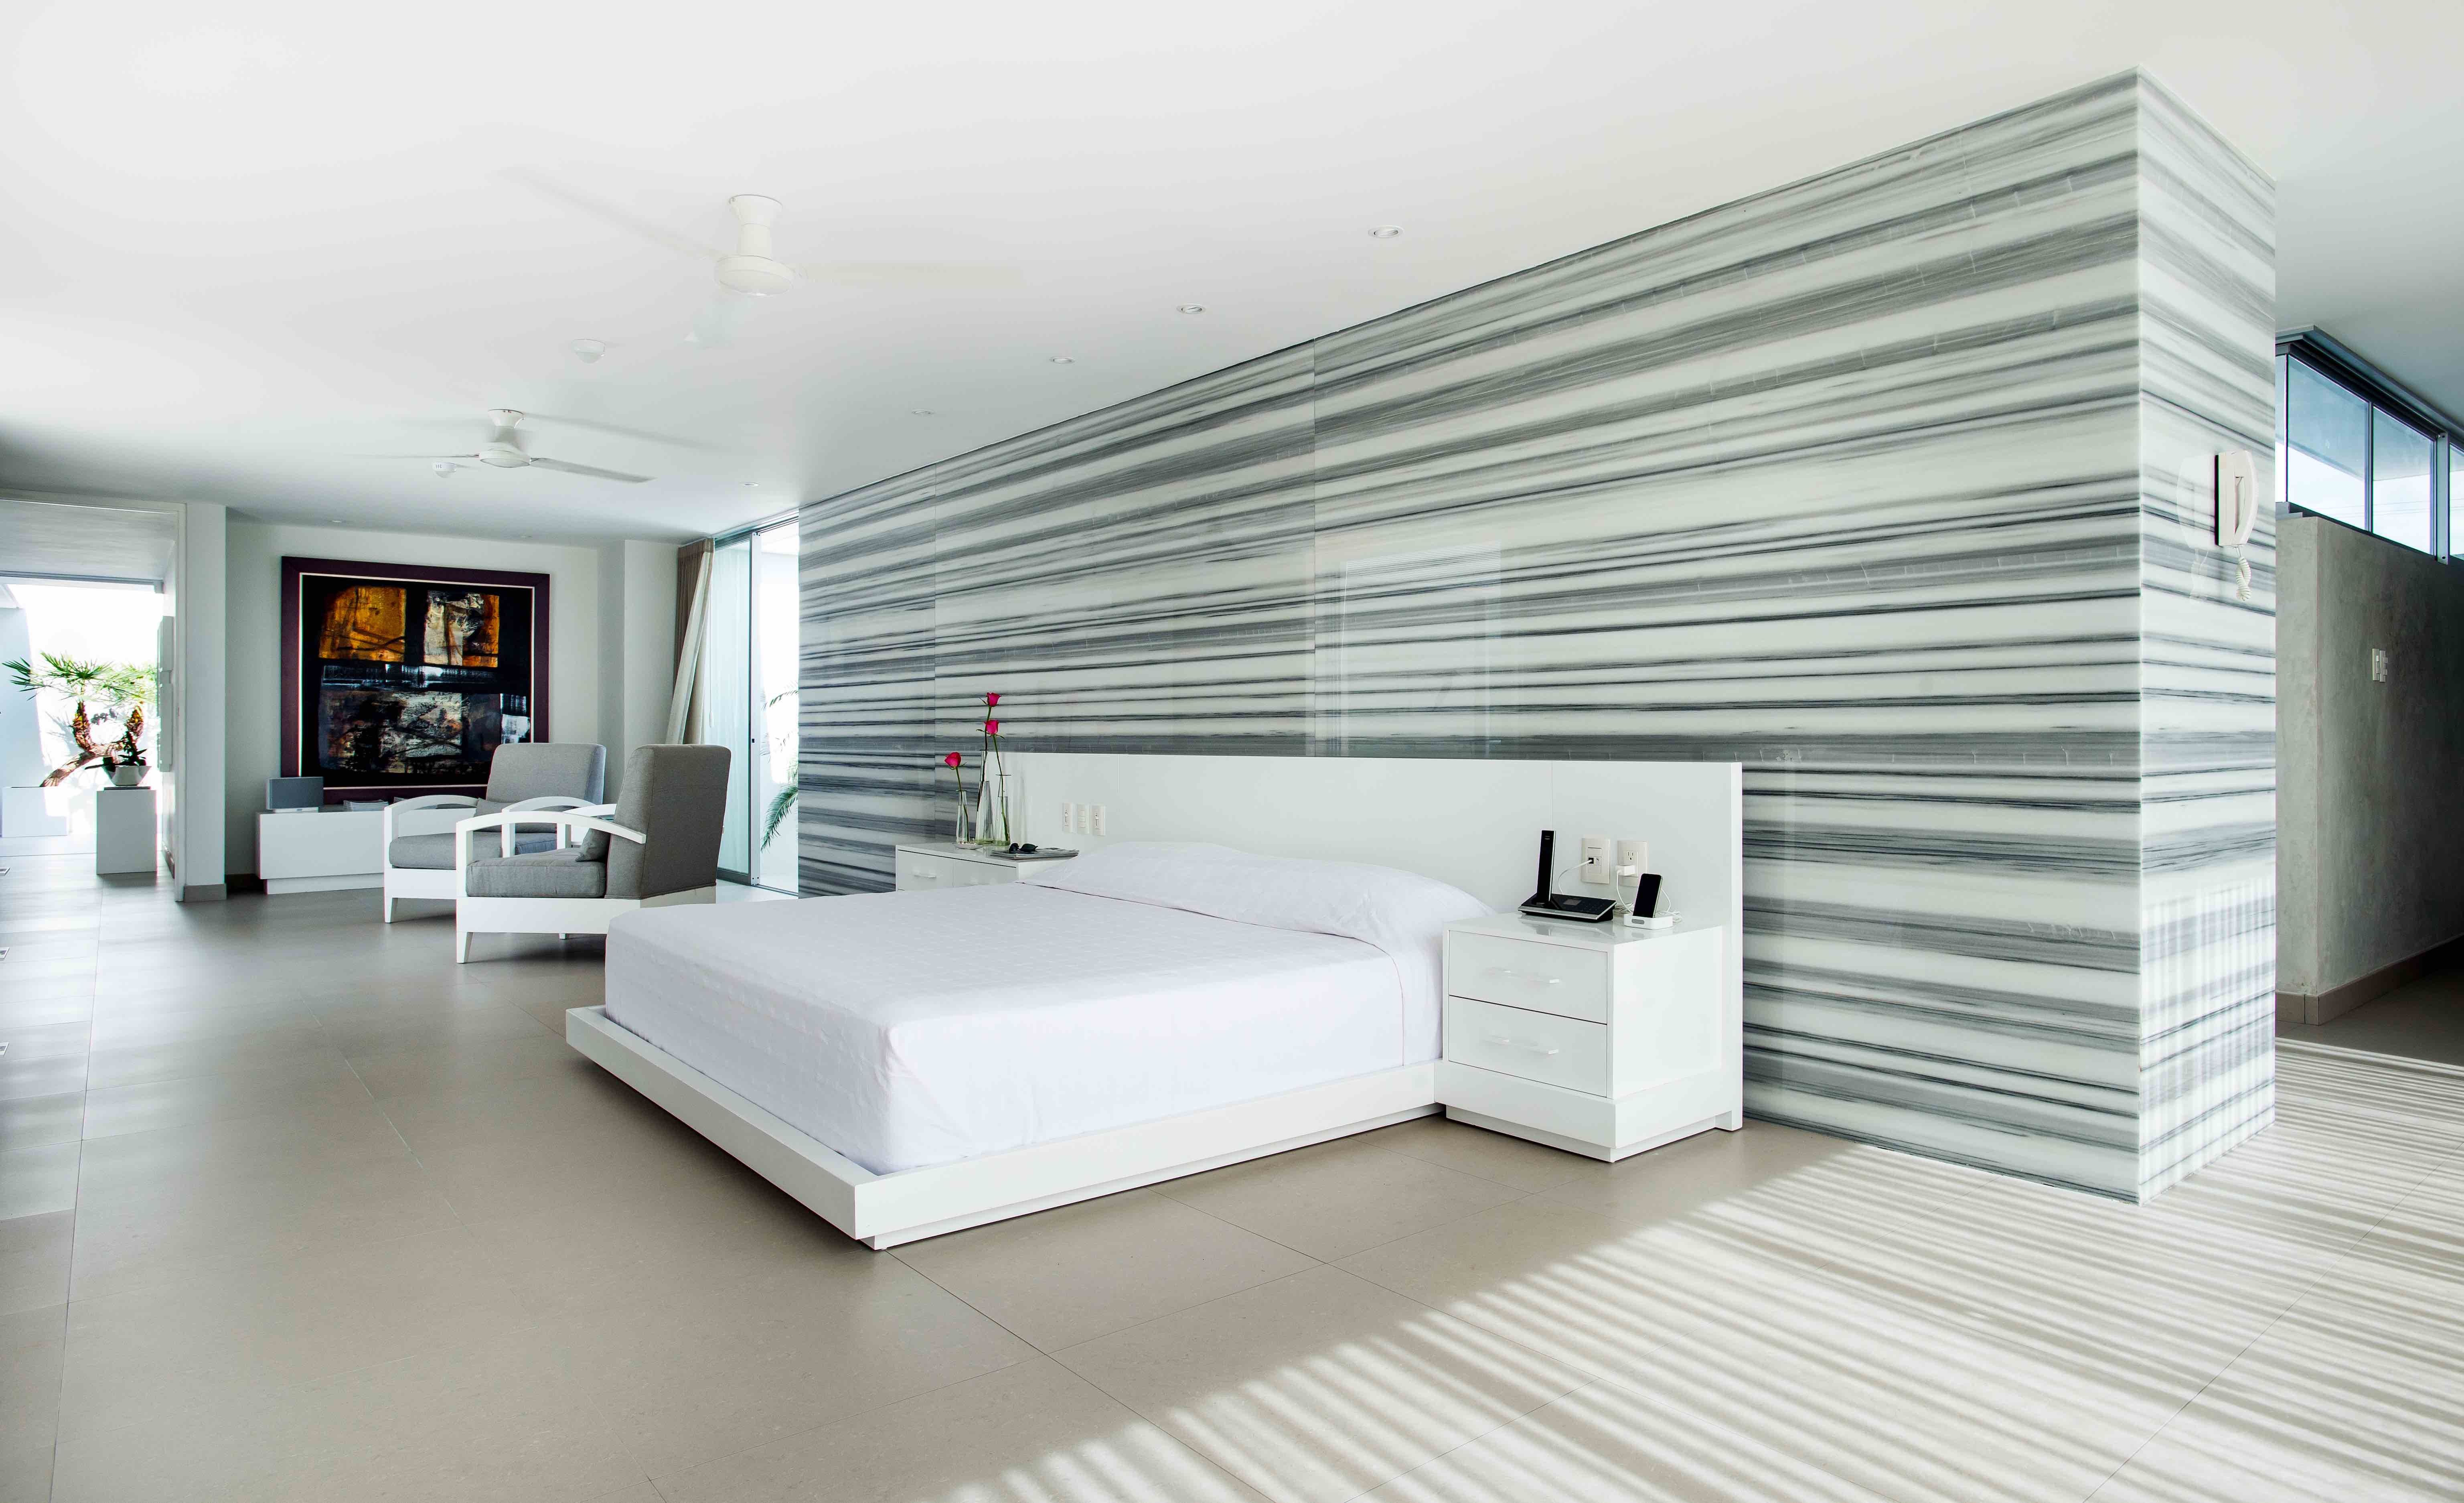 The master bedroom features walls of grey and white marble and sand-colored stone floors